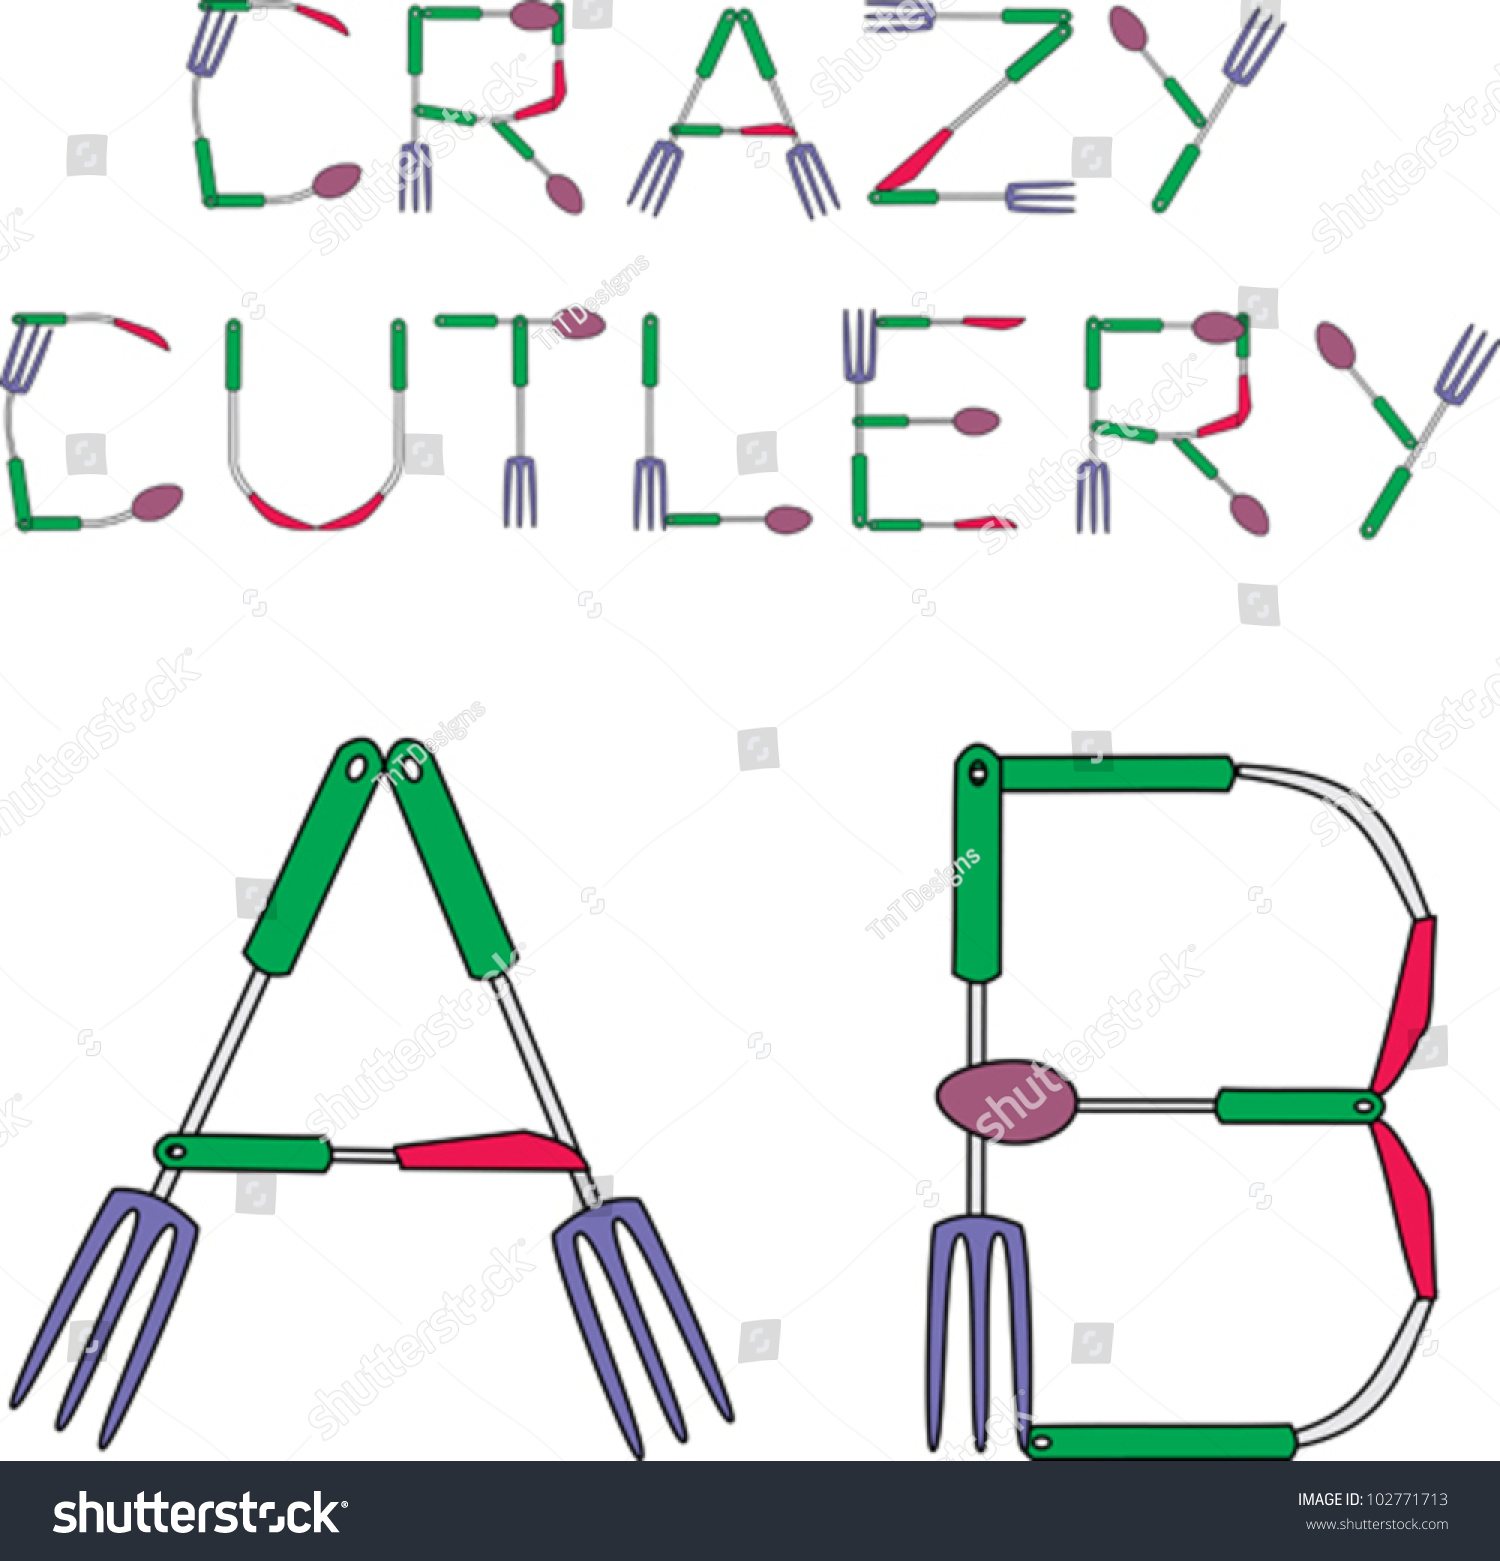 Pics  Word  Letters Fork Spoon Knife